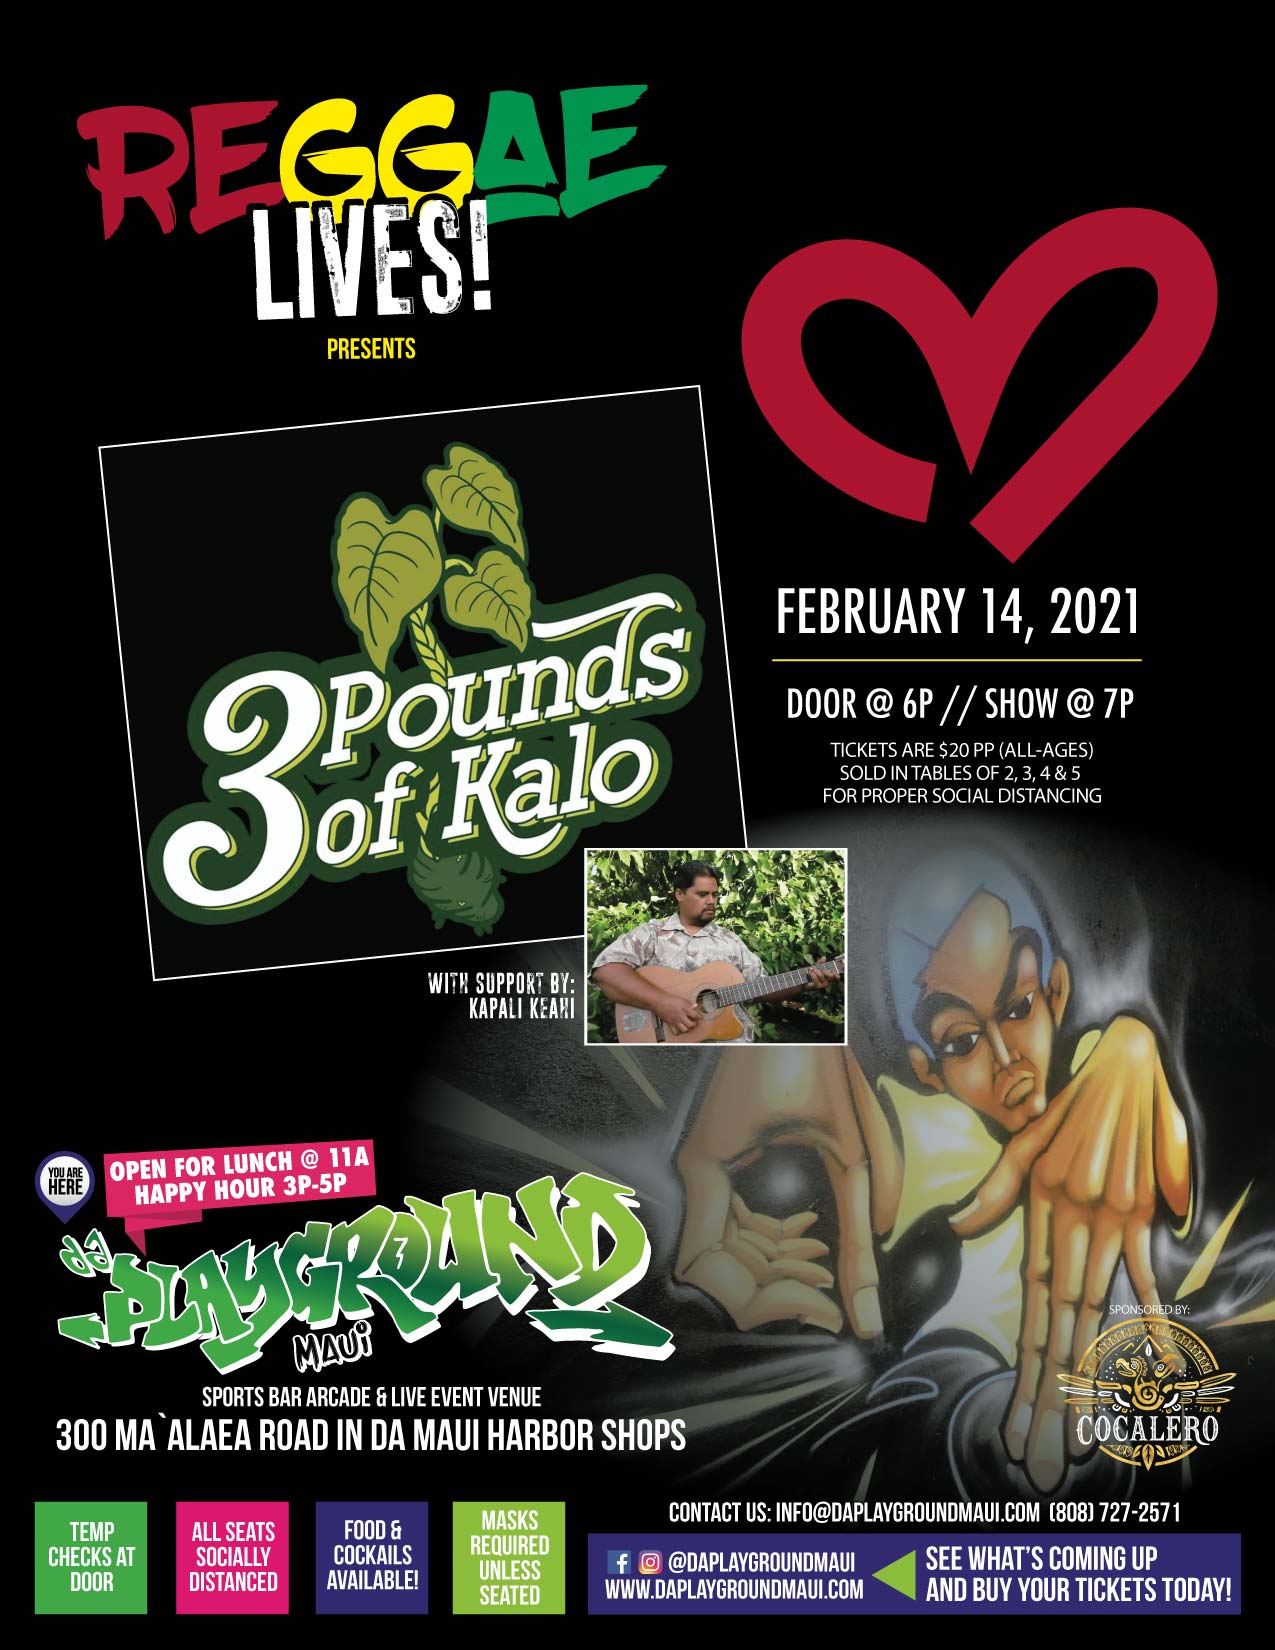 Reggae Lives! presents 3 pounds of Kalo with Support by Kapali Kea!